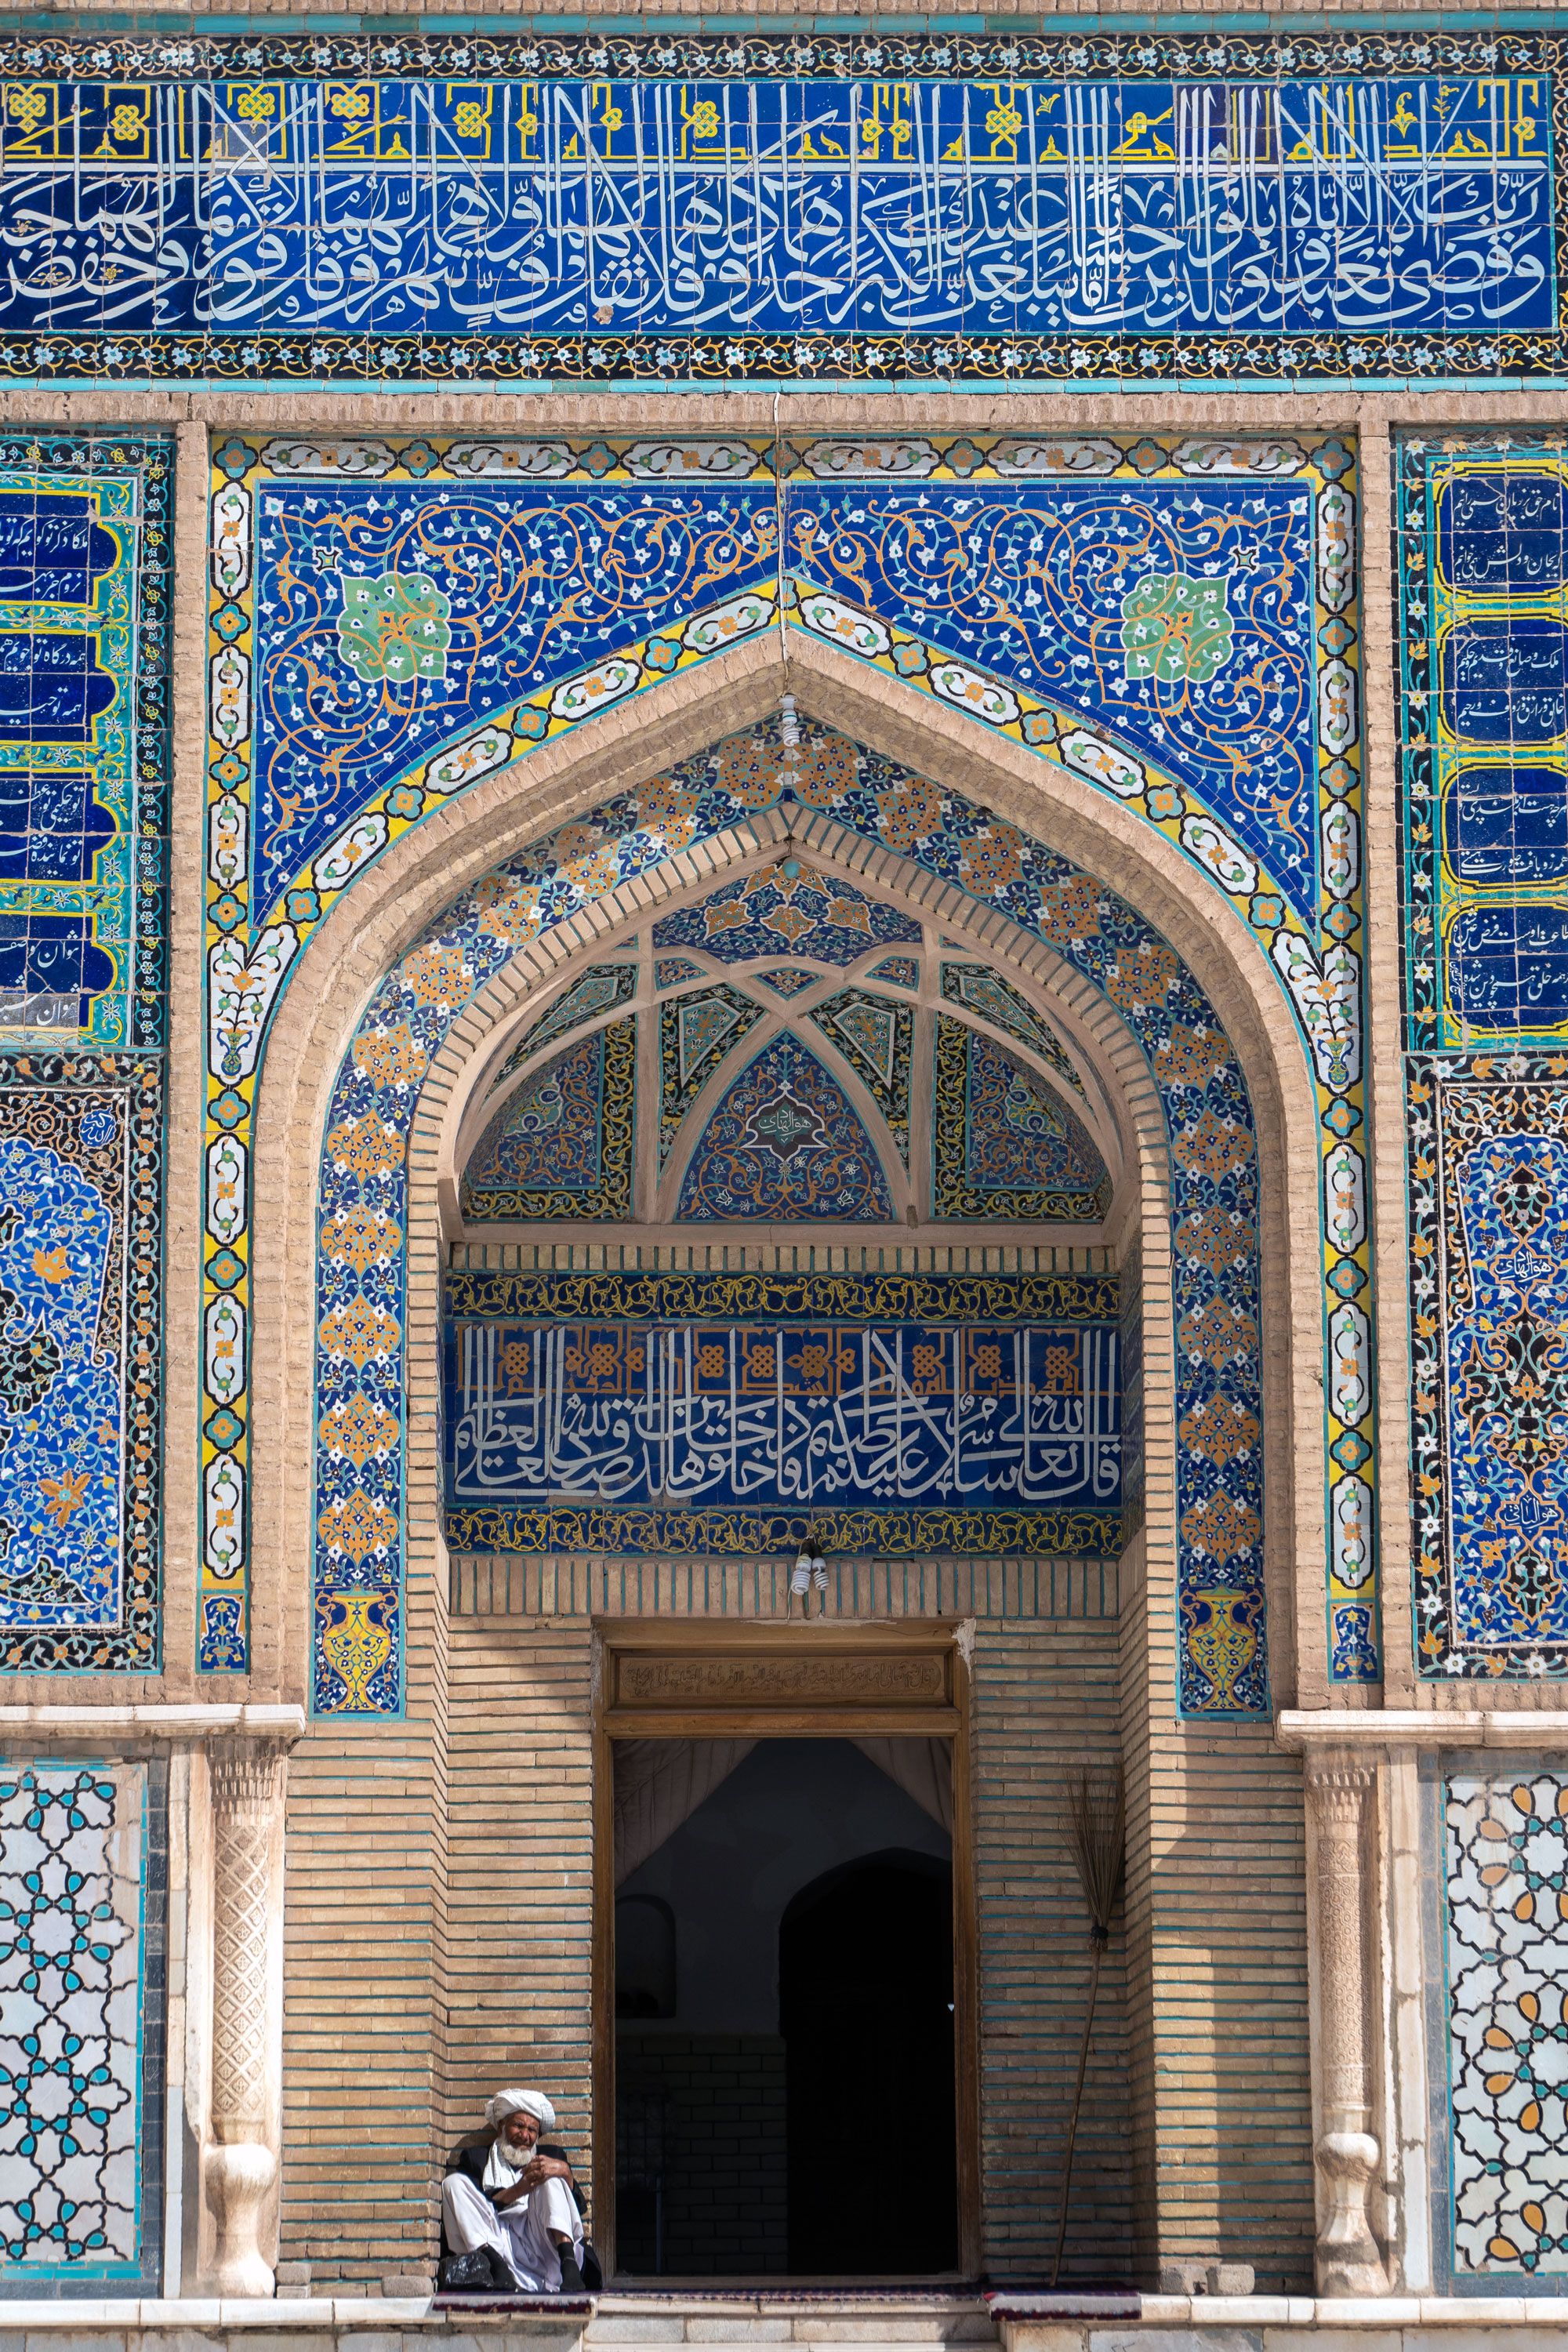 An old man sits under an archway at the colourful Friday Mosque in Herat.